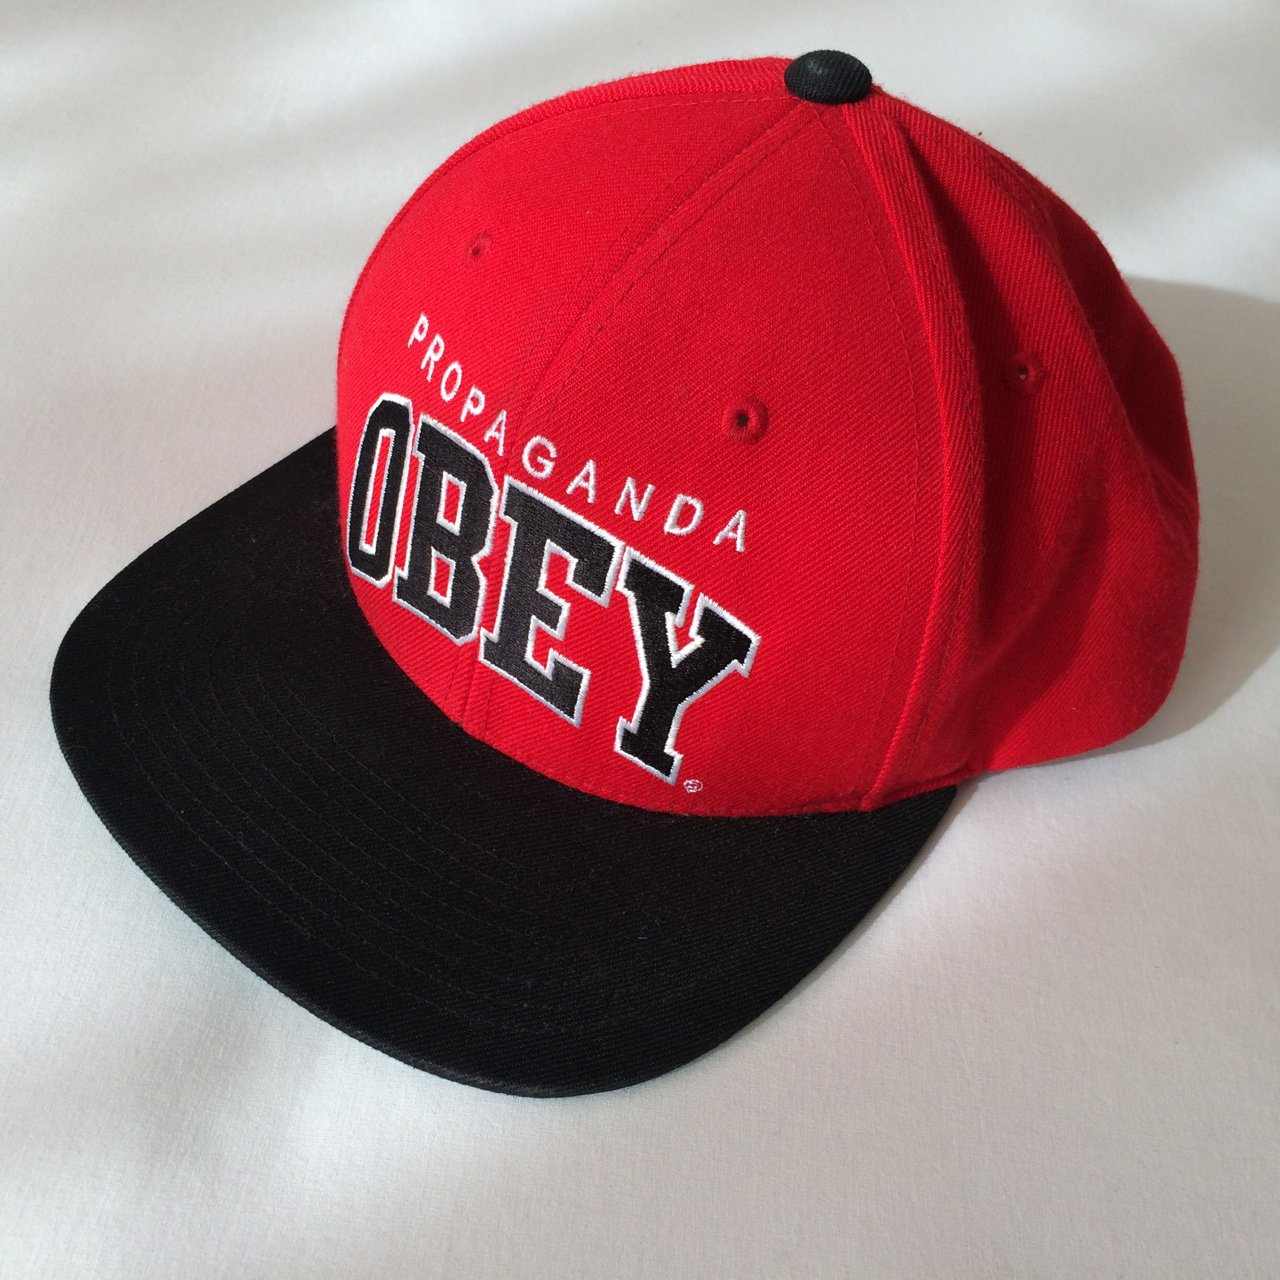 11b9328f2a3 Obey Propaganda Embroidered Wool Acrylic Snapback Hat. IN a - Depop